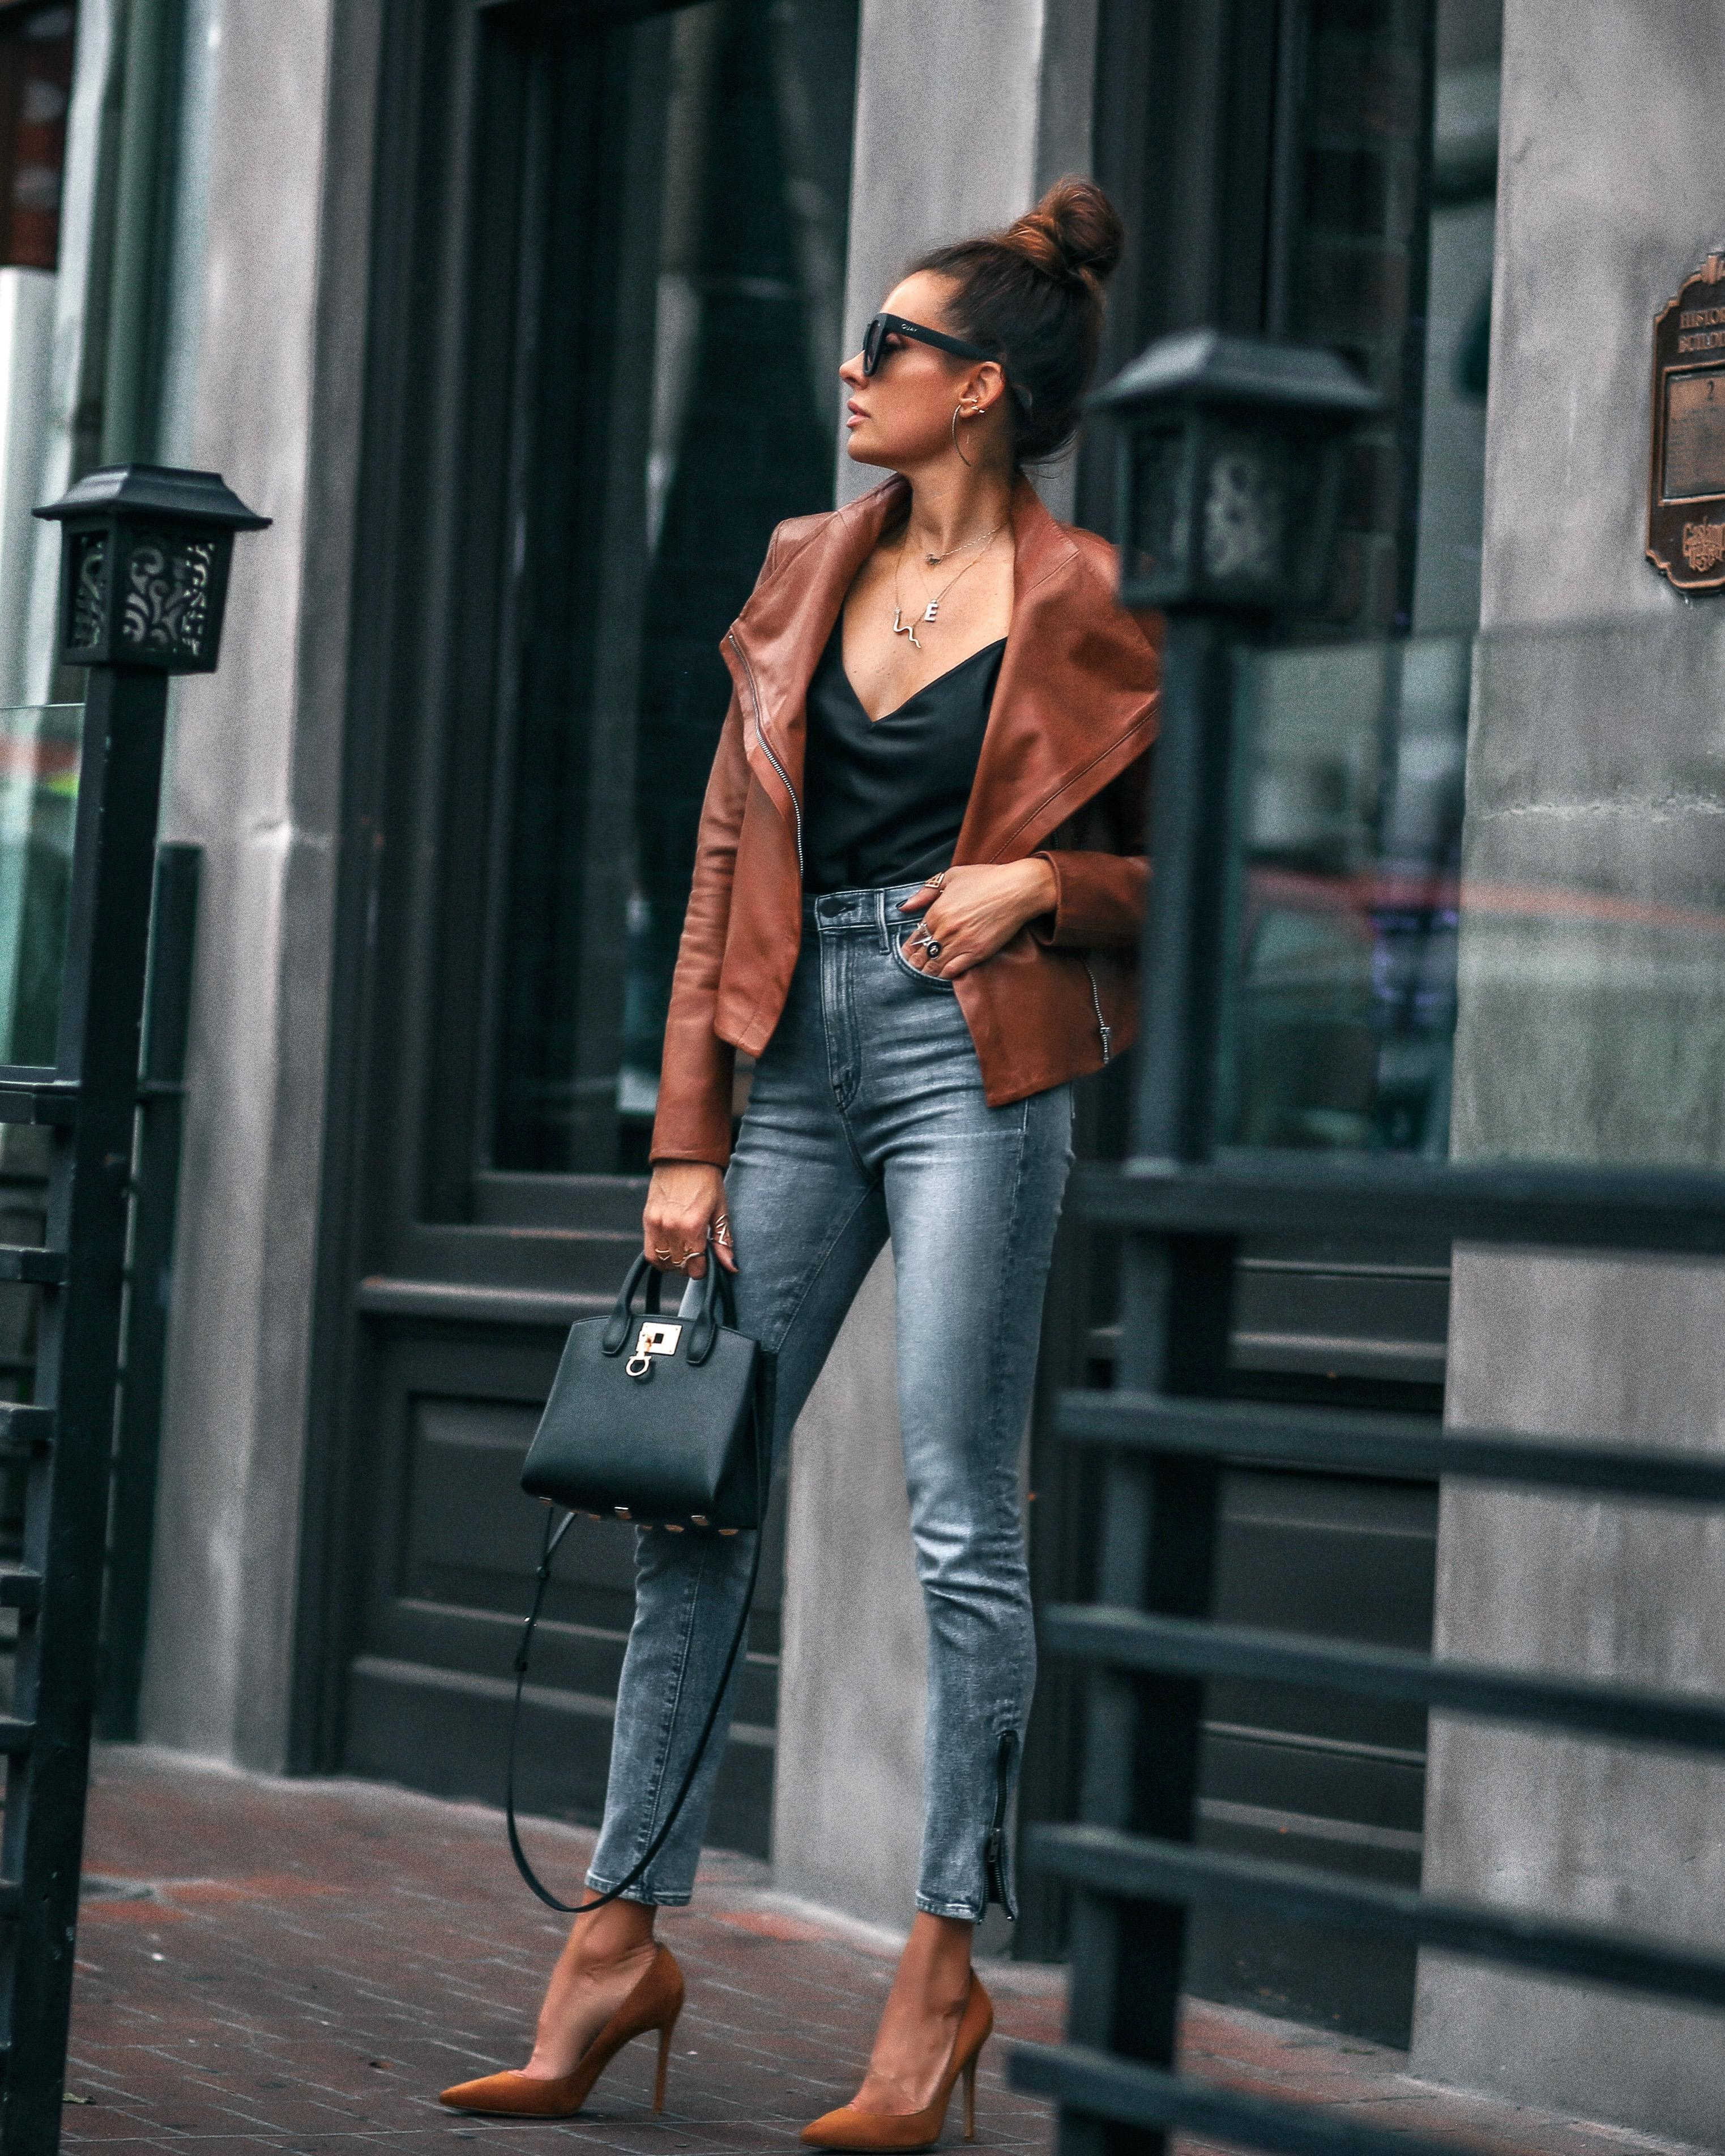 fashionedchic blogger jacket tank top jeans shoes sunglasses bag pumps leather jacket fall outfits